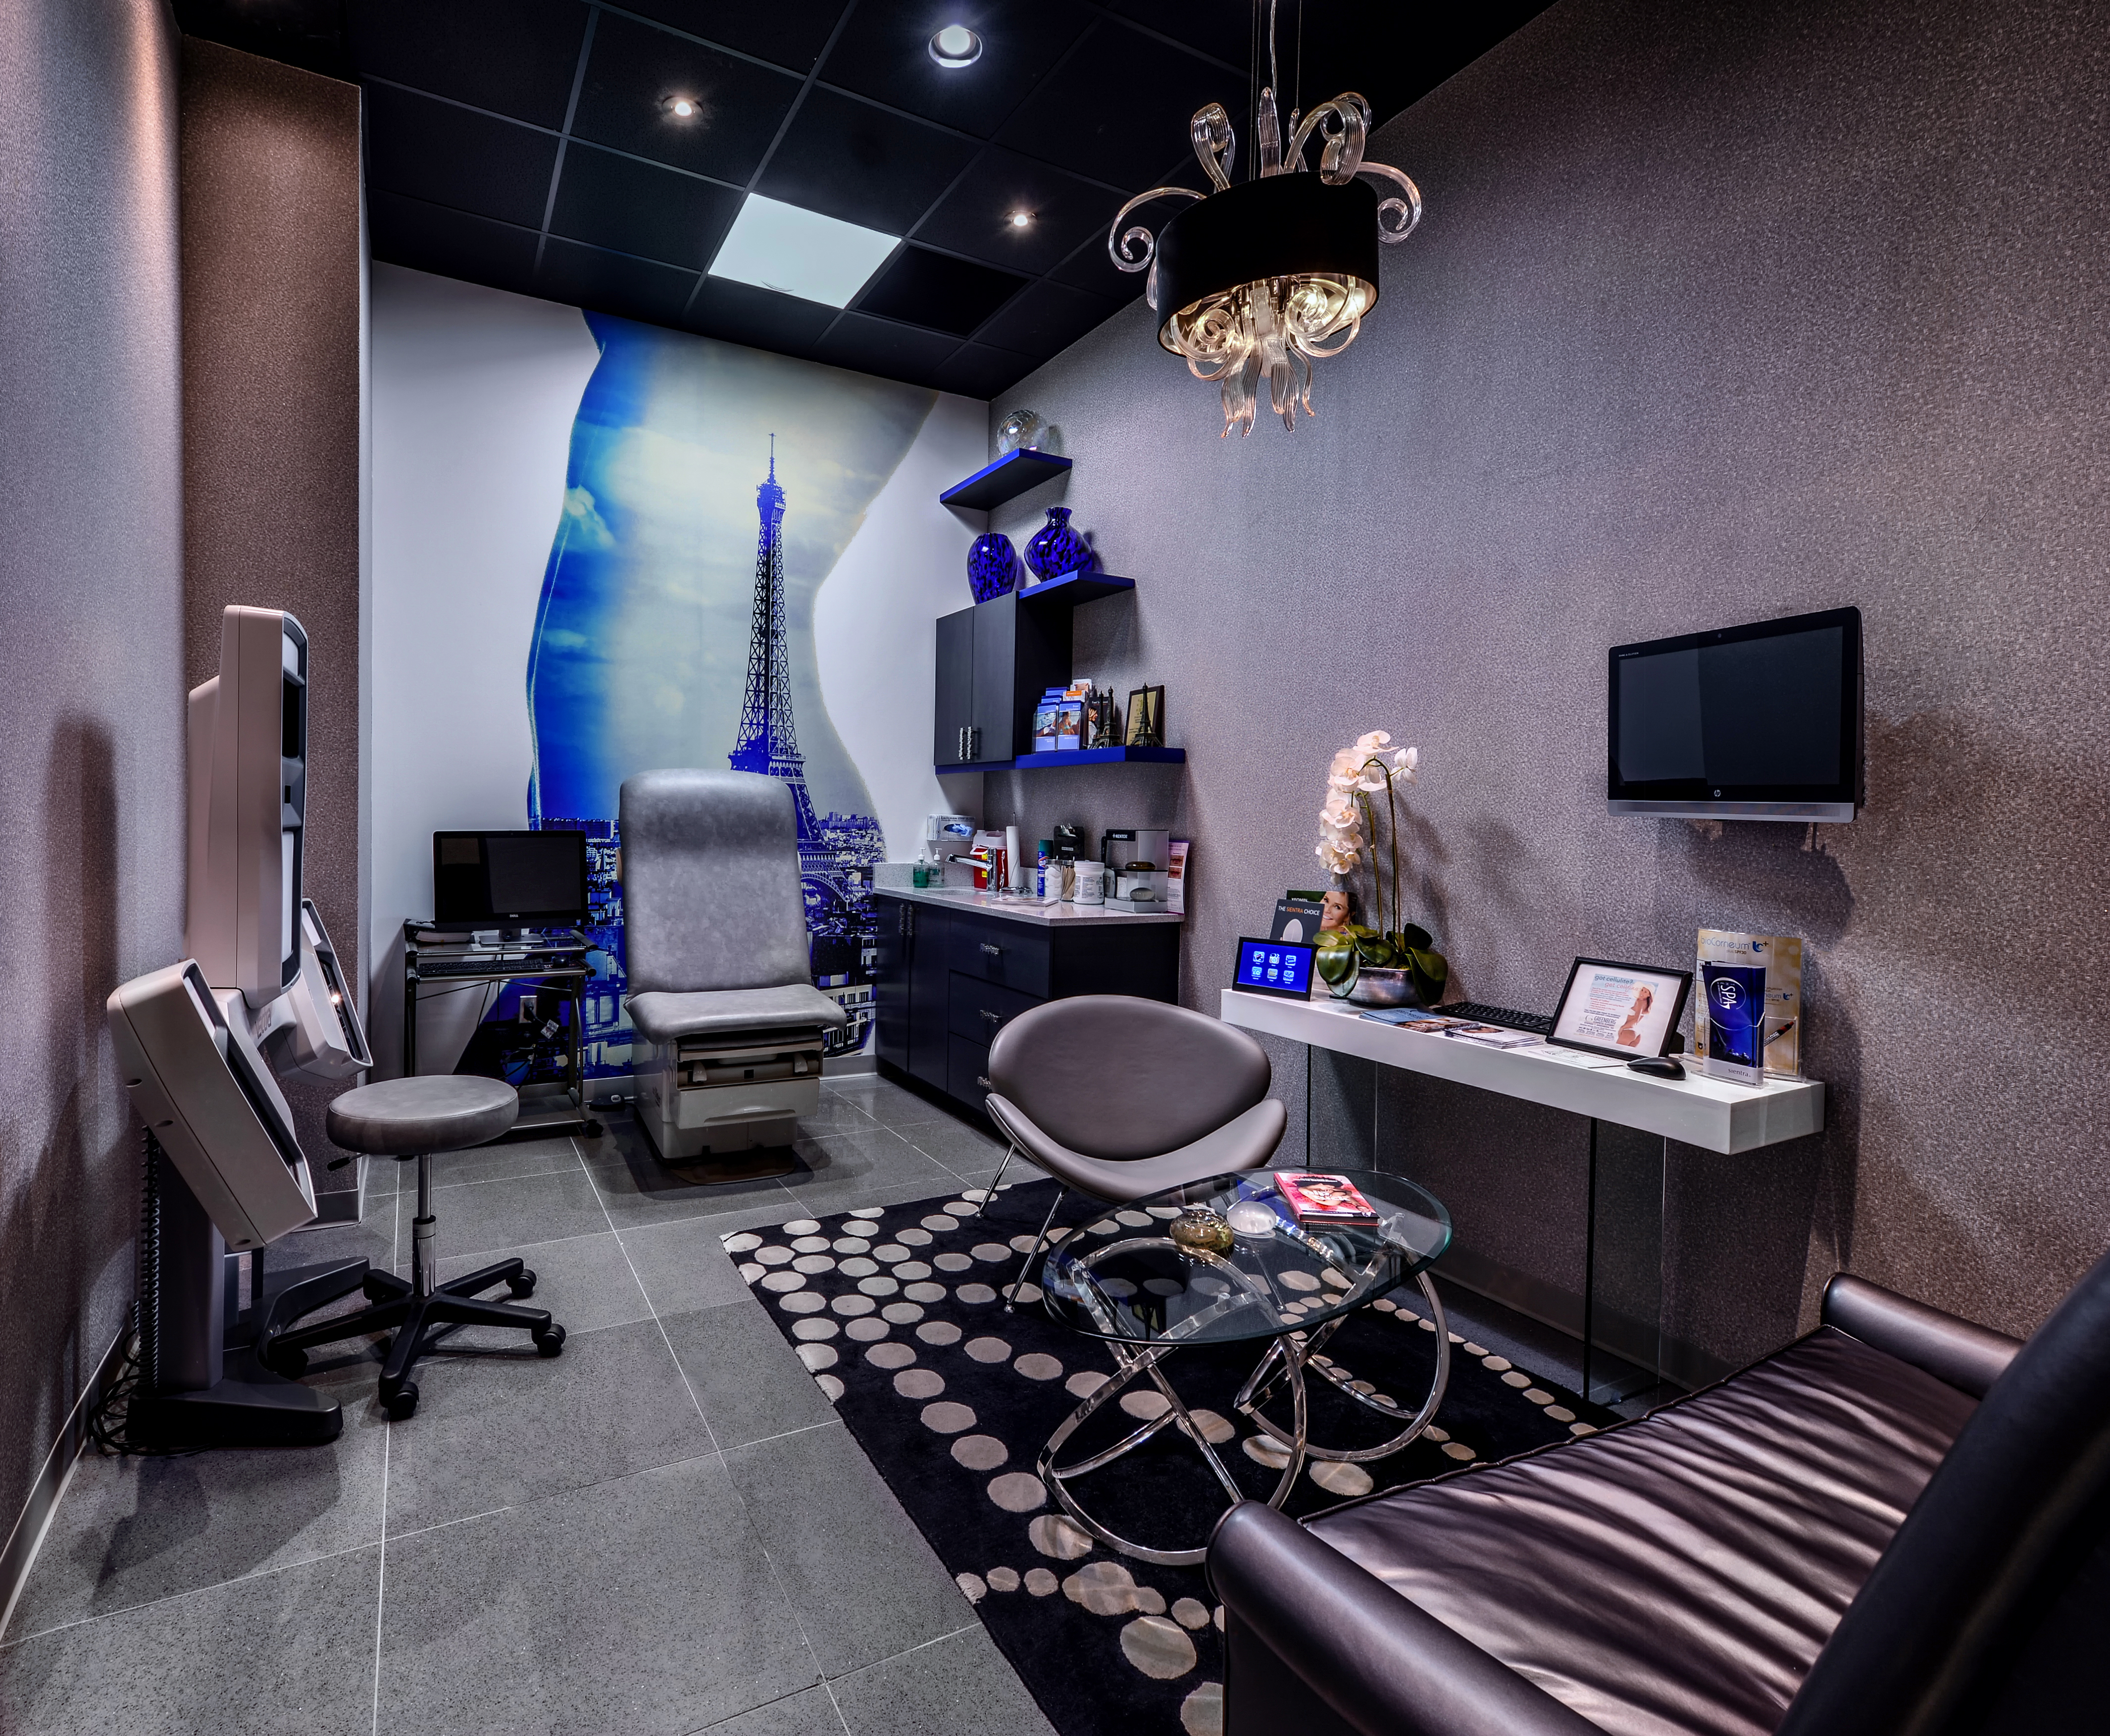 PHOTO TOUR: Greenberg Cosmetic Surgery